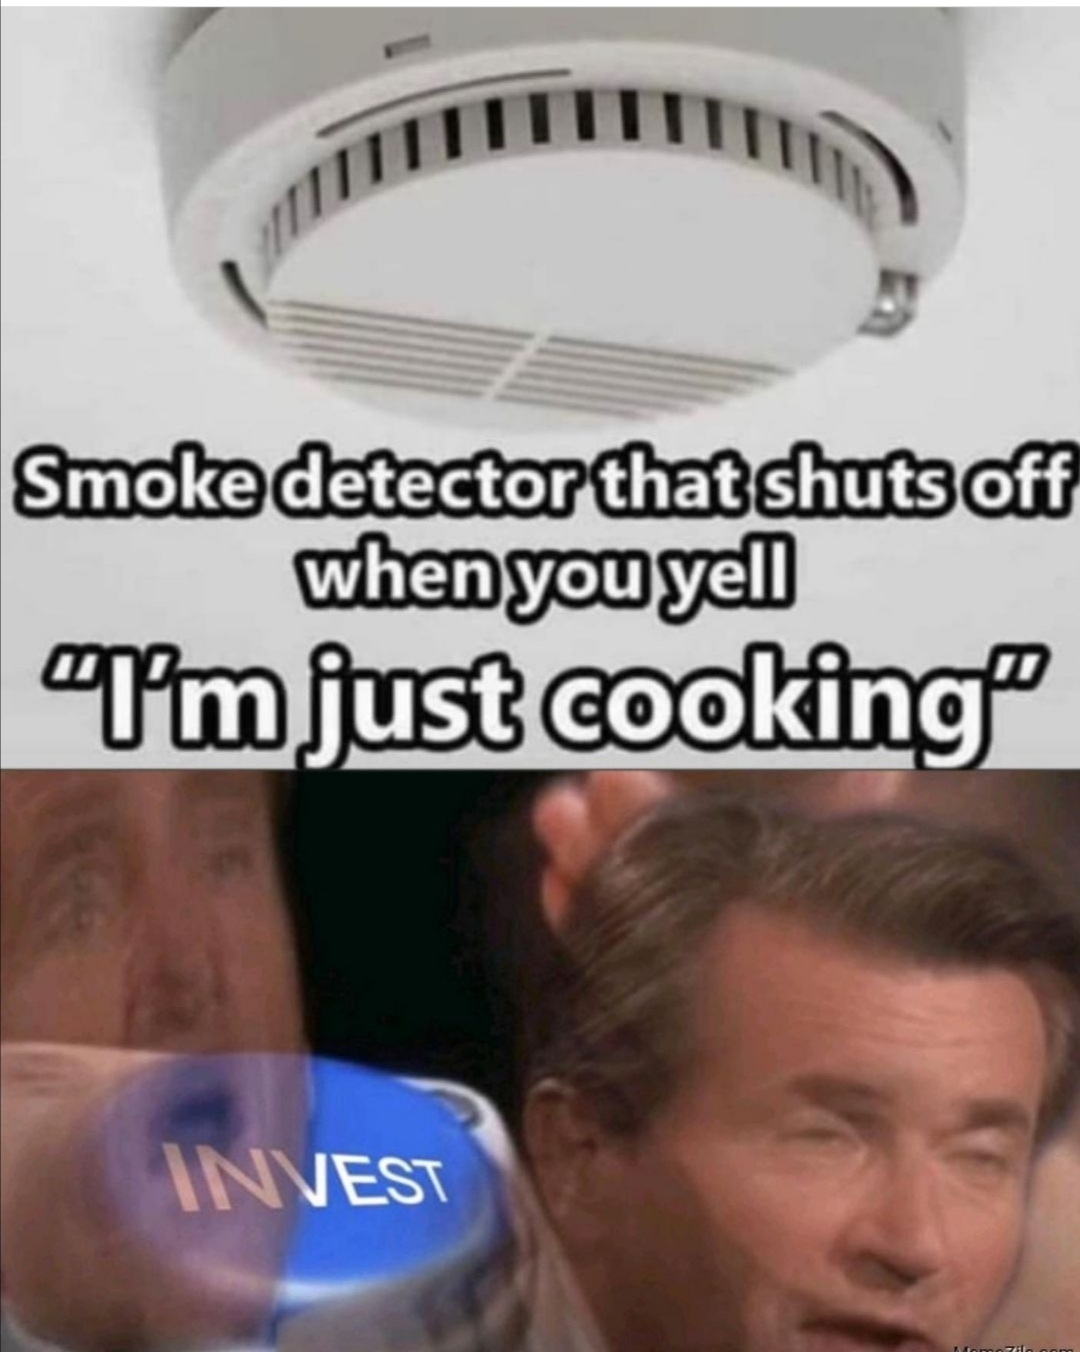 Smoke detector that shuts off when you yell T'm just cooking